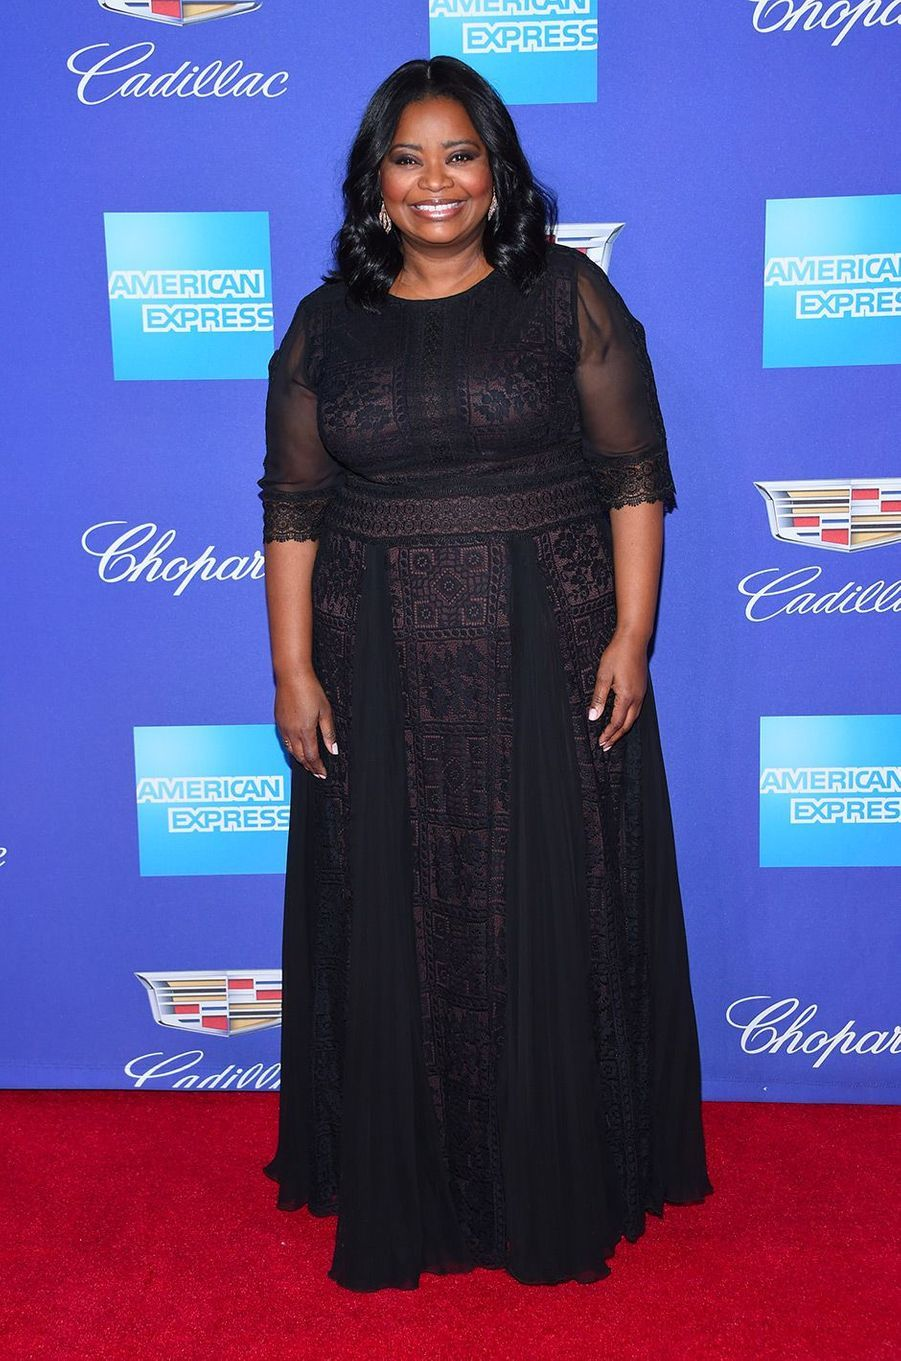 Octavia Spencer au Festival International du film de Palm Springs, mardi 2 janvier